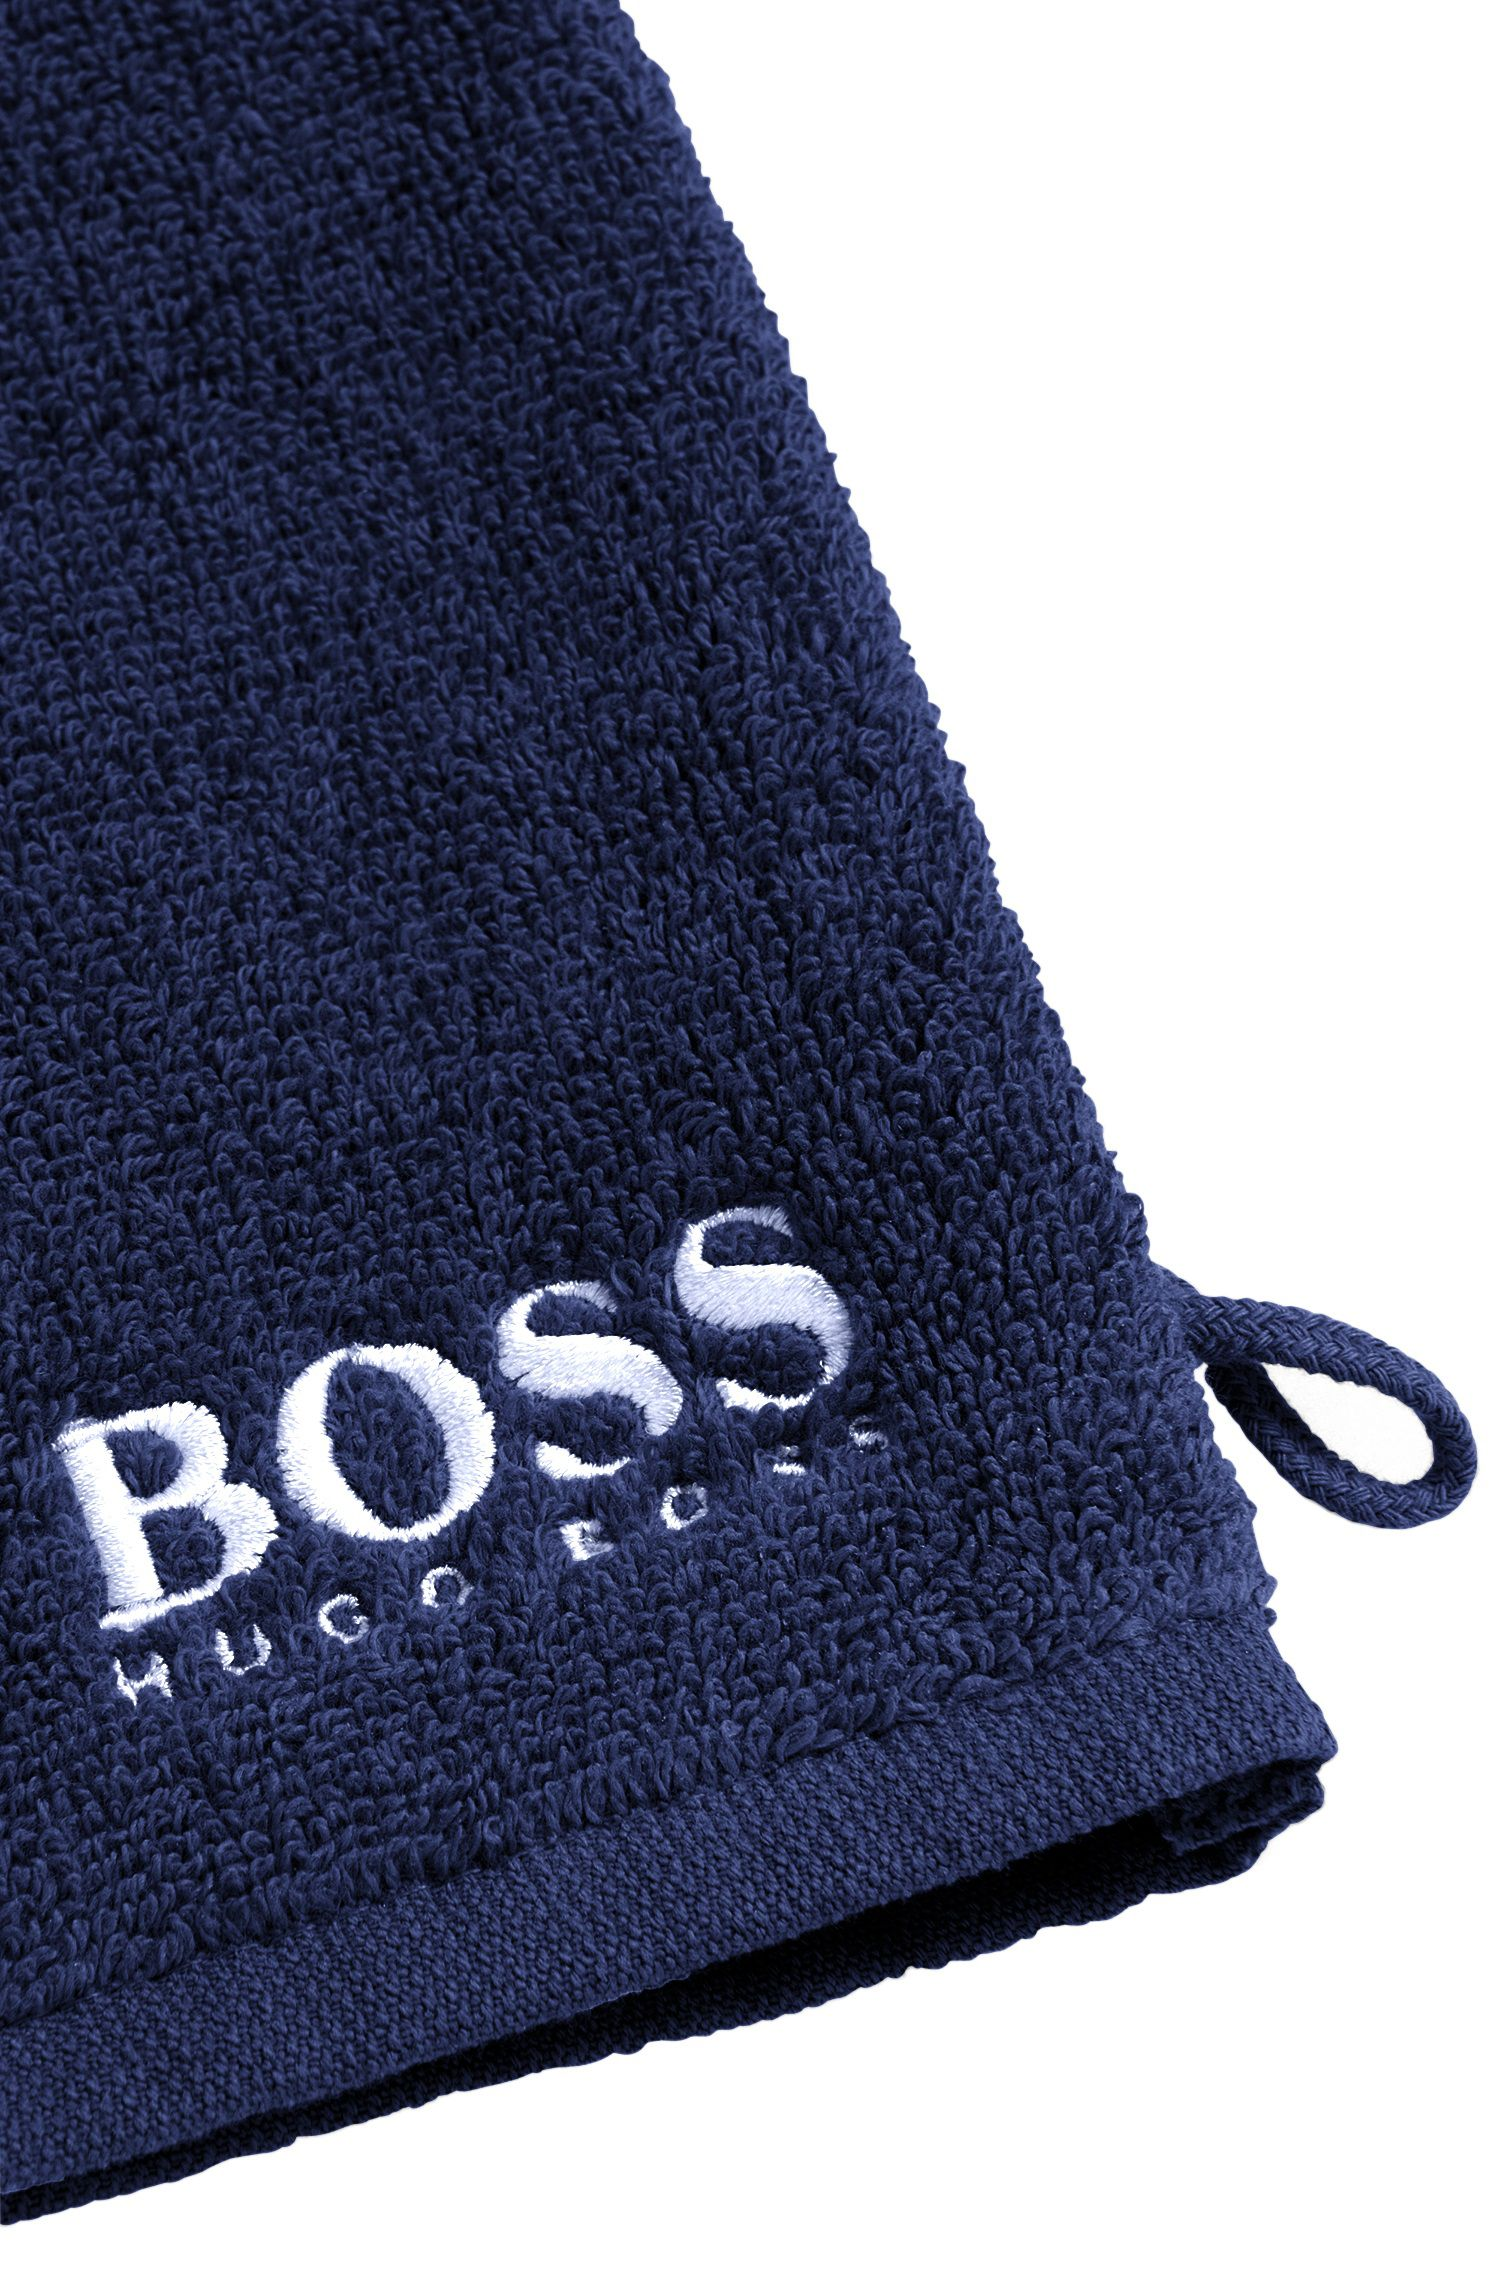 Finest Egyptian cotton washing mitt with contrast logo embroidery